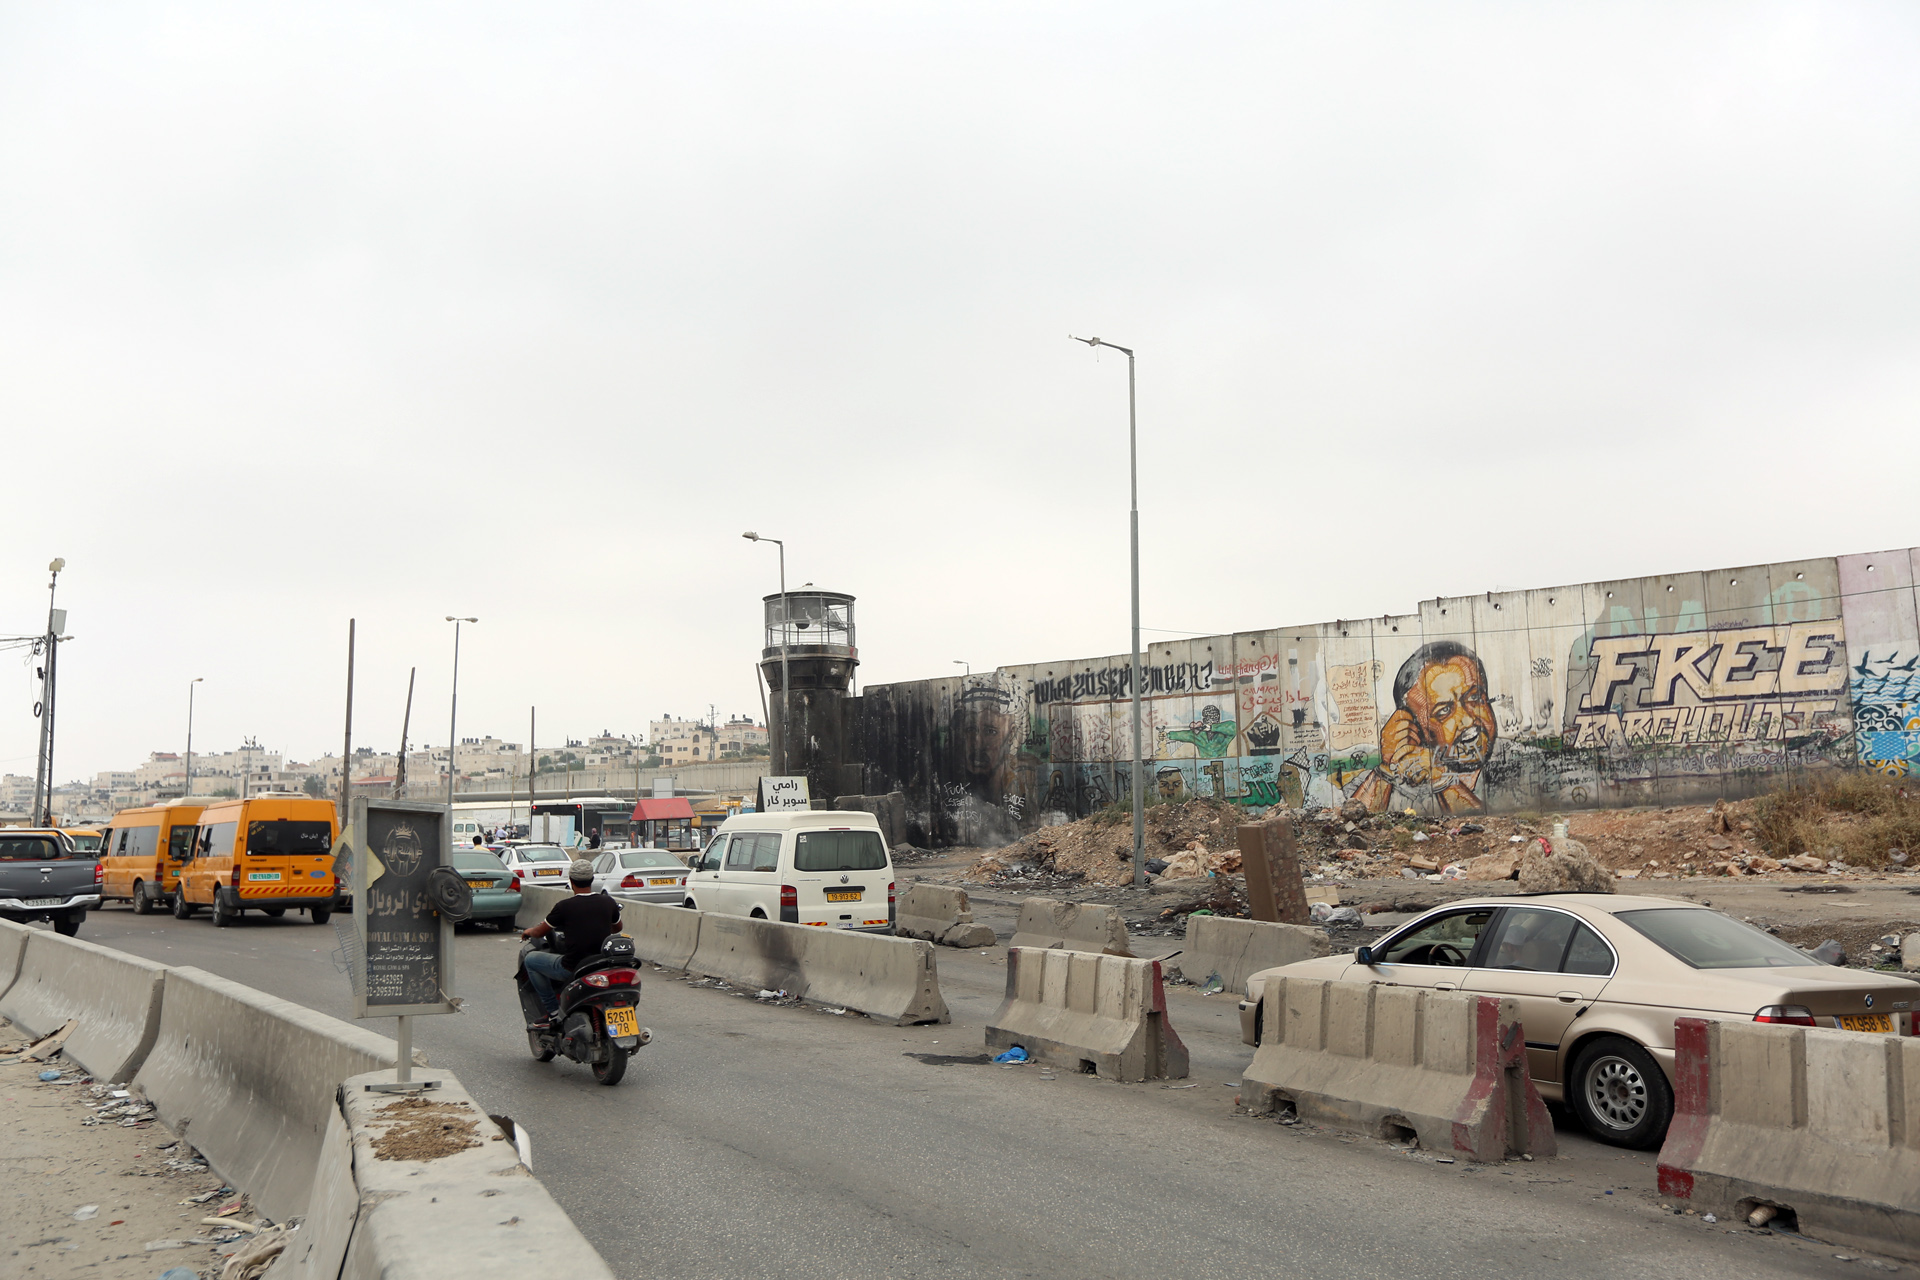 Cars and taxis wait in line to cross Qalandia checkpoint in order to access parts of Jerusalem on the other side of Israel's separation barrier. (Photo: DCIP / Elia Ghorbiah)